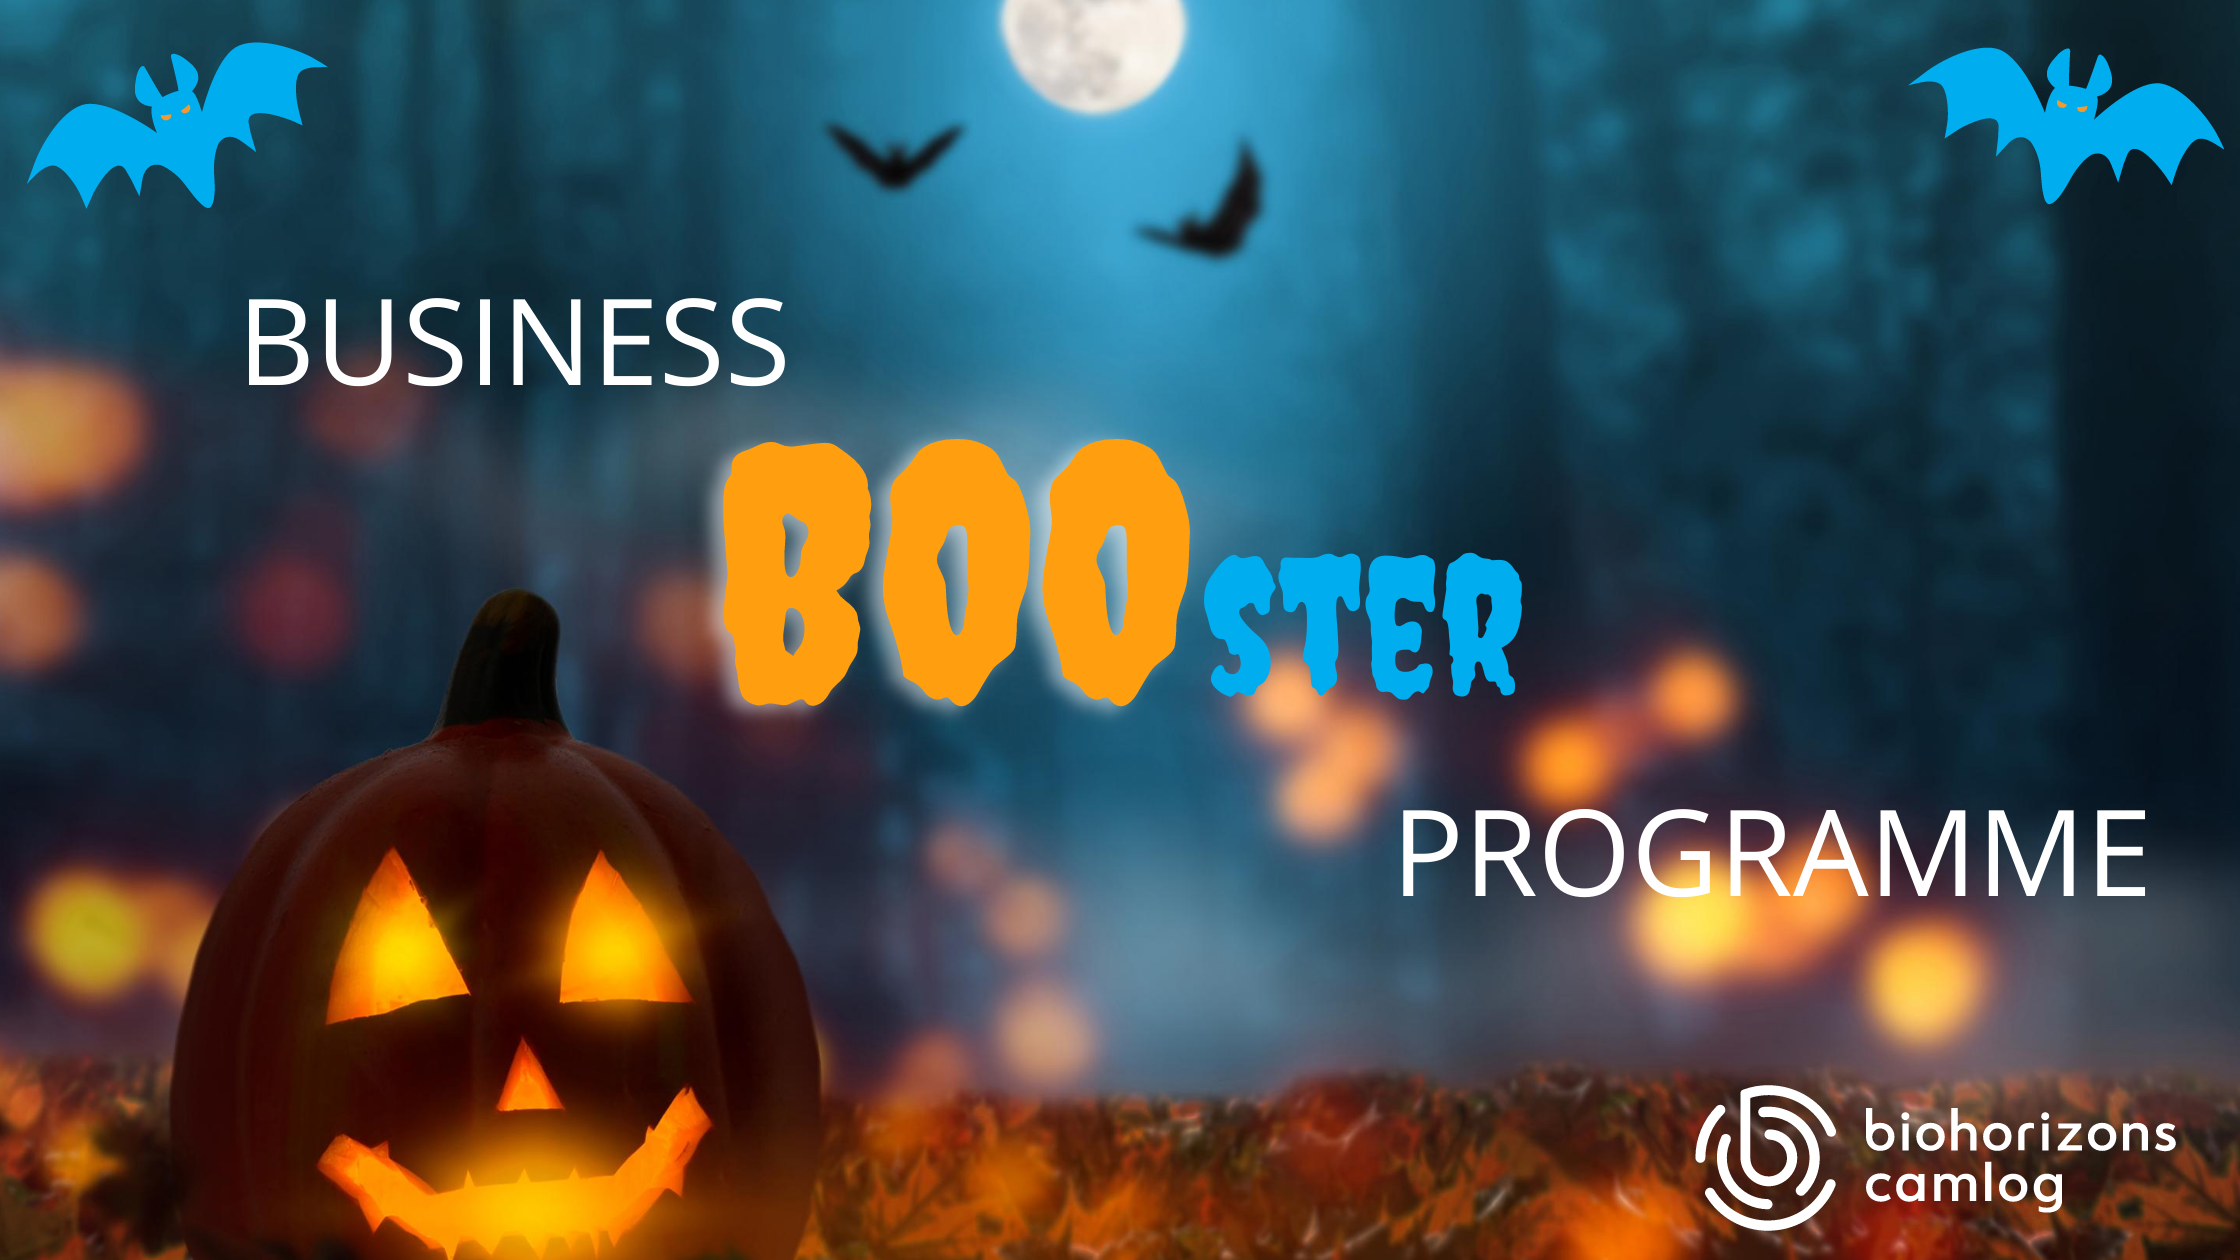 Business 'BOO'ster Programme - Session 1: Create a business that is there for you